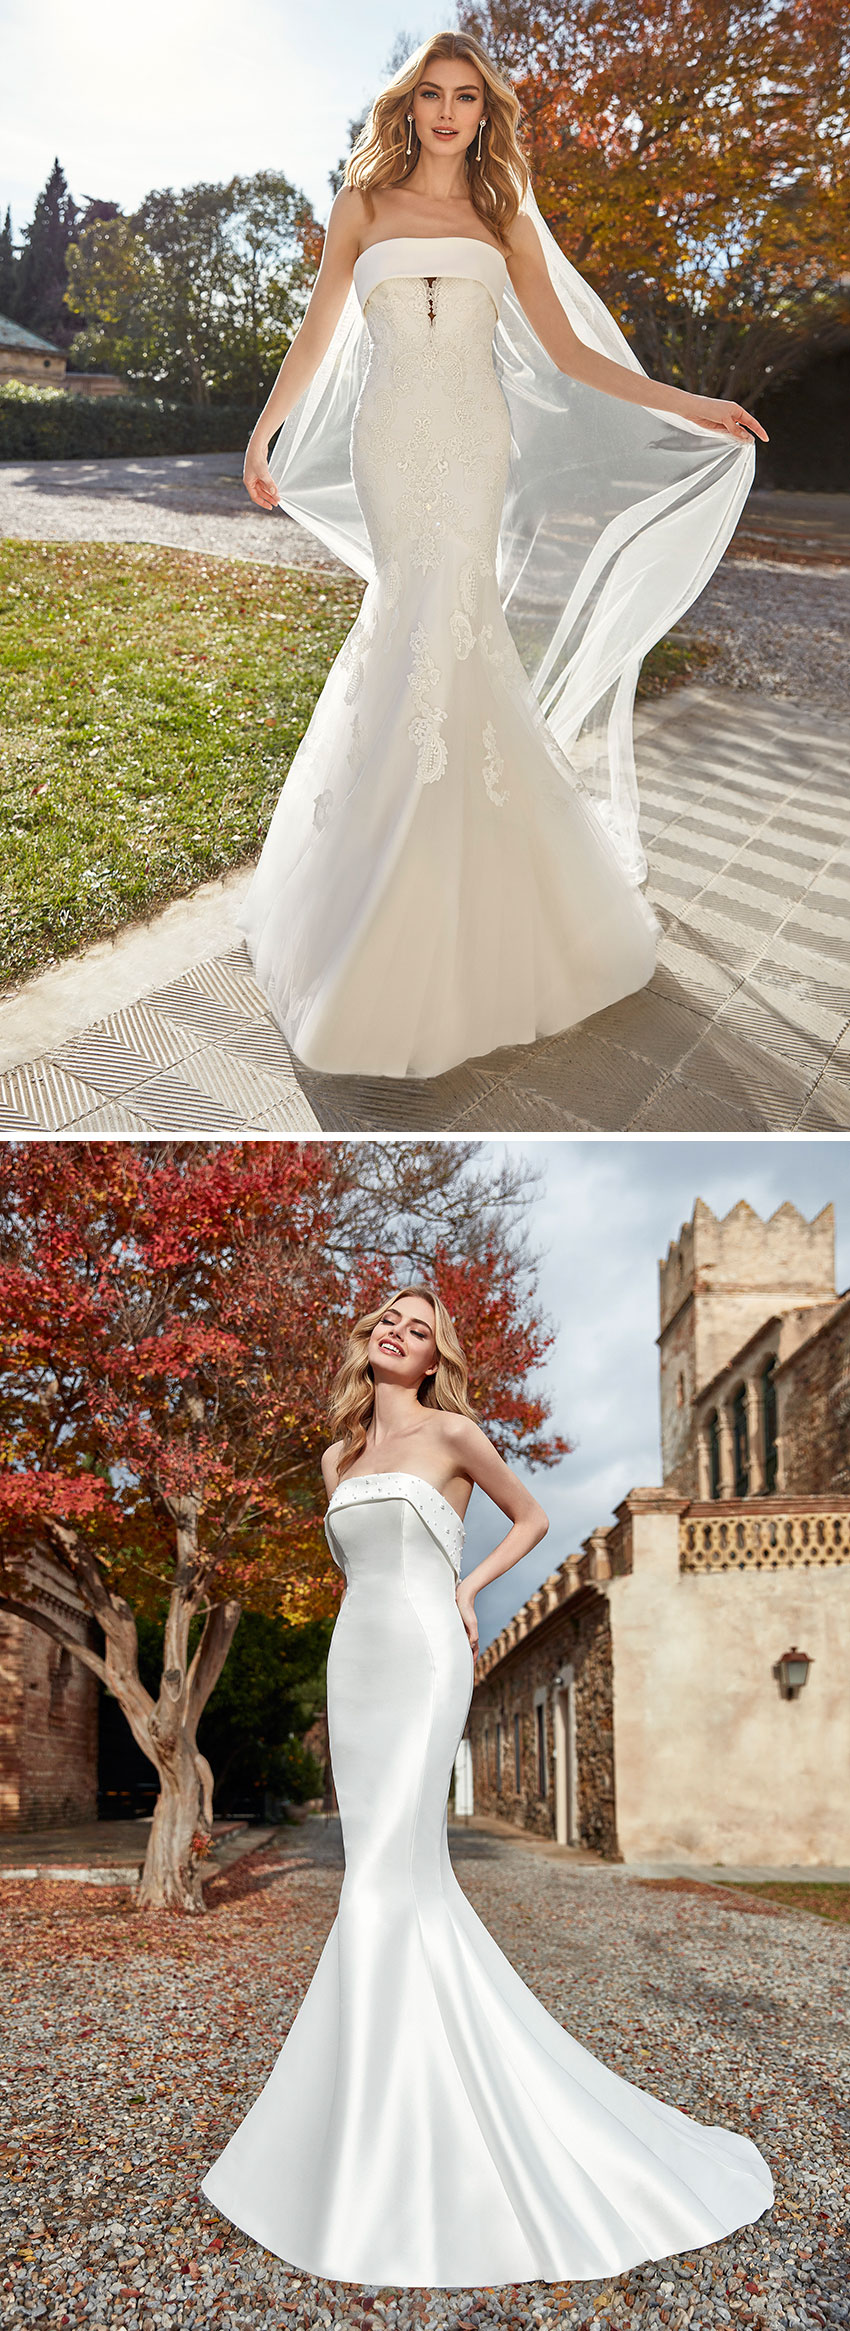 St. Patrick 2021 bridal collection pays tribute to New York's upper east side as featured in Perfect Wedding Magazine